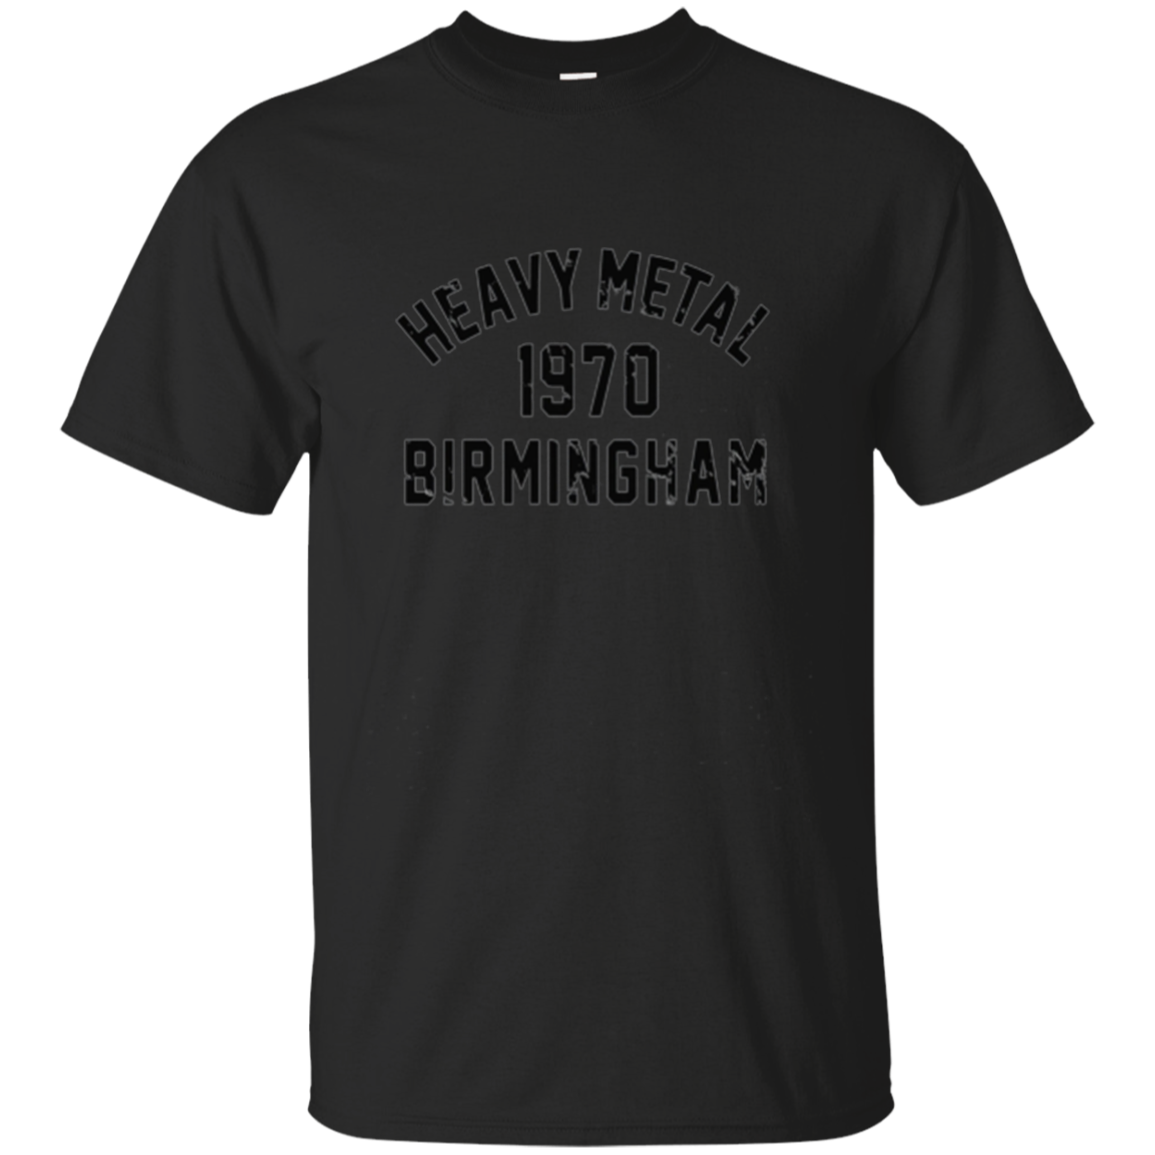 Dicky Ticker Birmingham T-shirt Heavy Metal Black 1970 Long